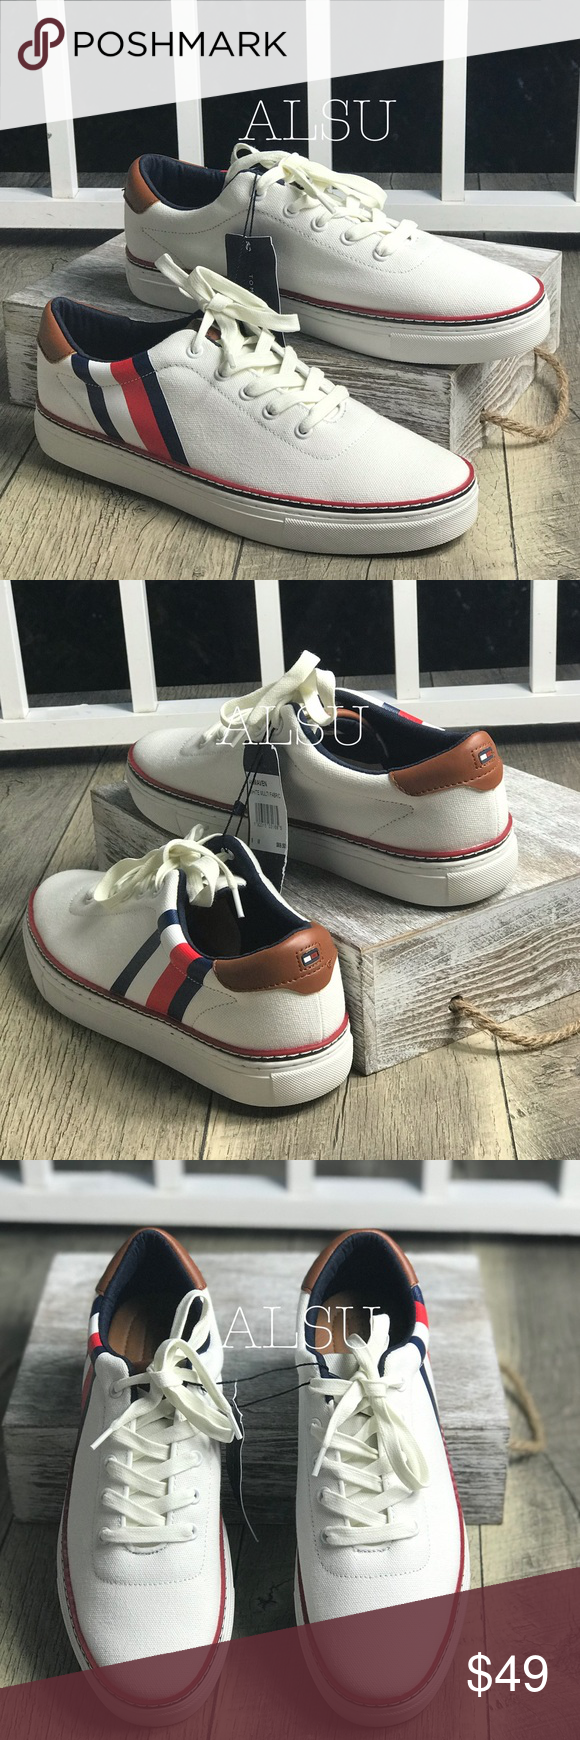 abf09498dd922 NWT Tommy Hilfiger Men s Maven Sneakers White Brand new